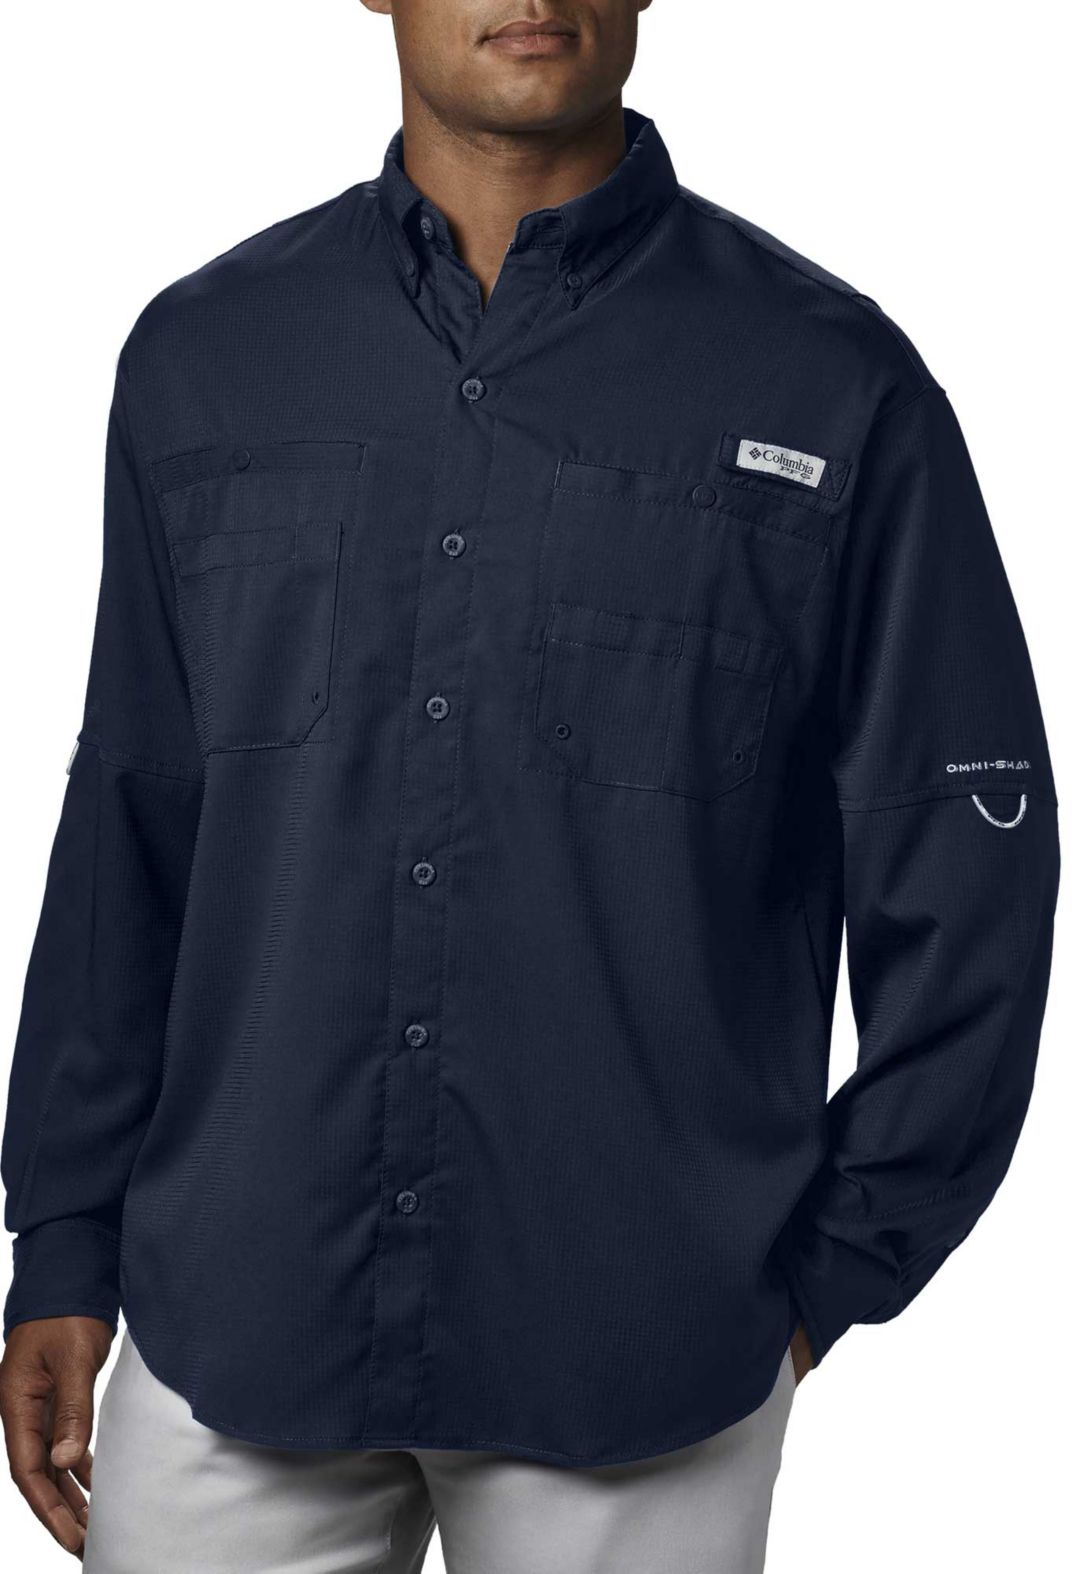 b7afb1d4de7 Columbia Men's PFG Tamiami II Long Sleeve Shirt | DICK'S Sporting Goods